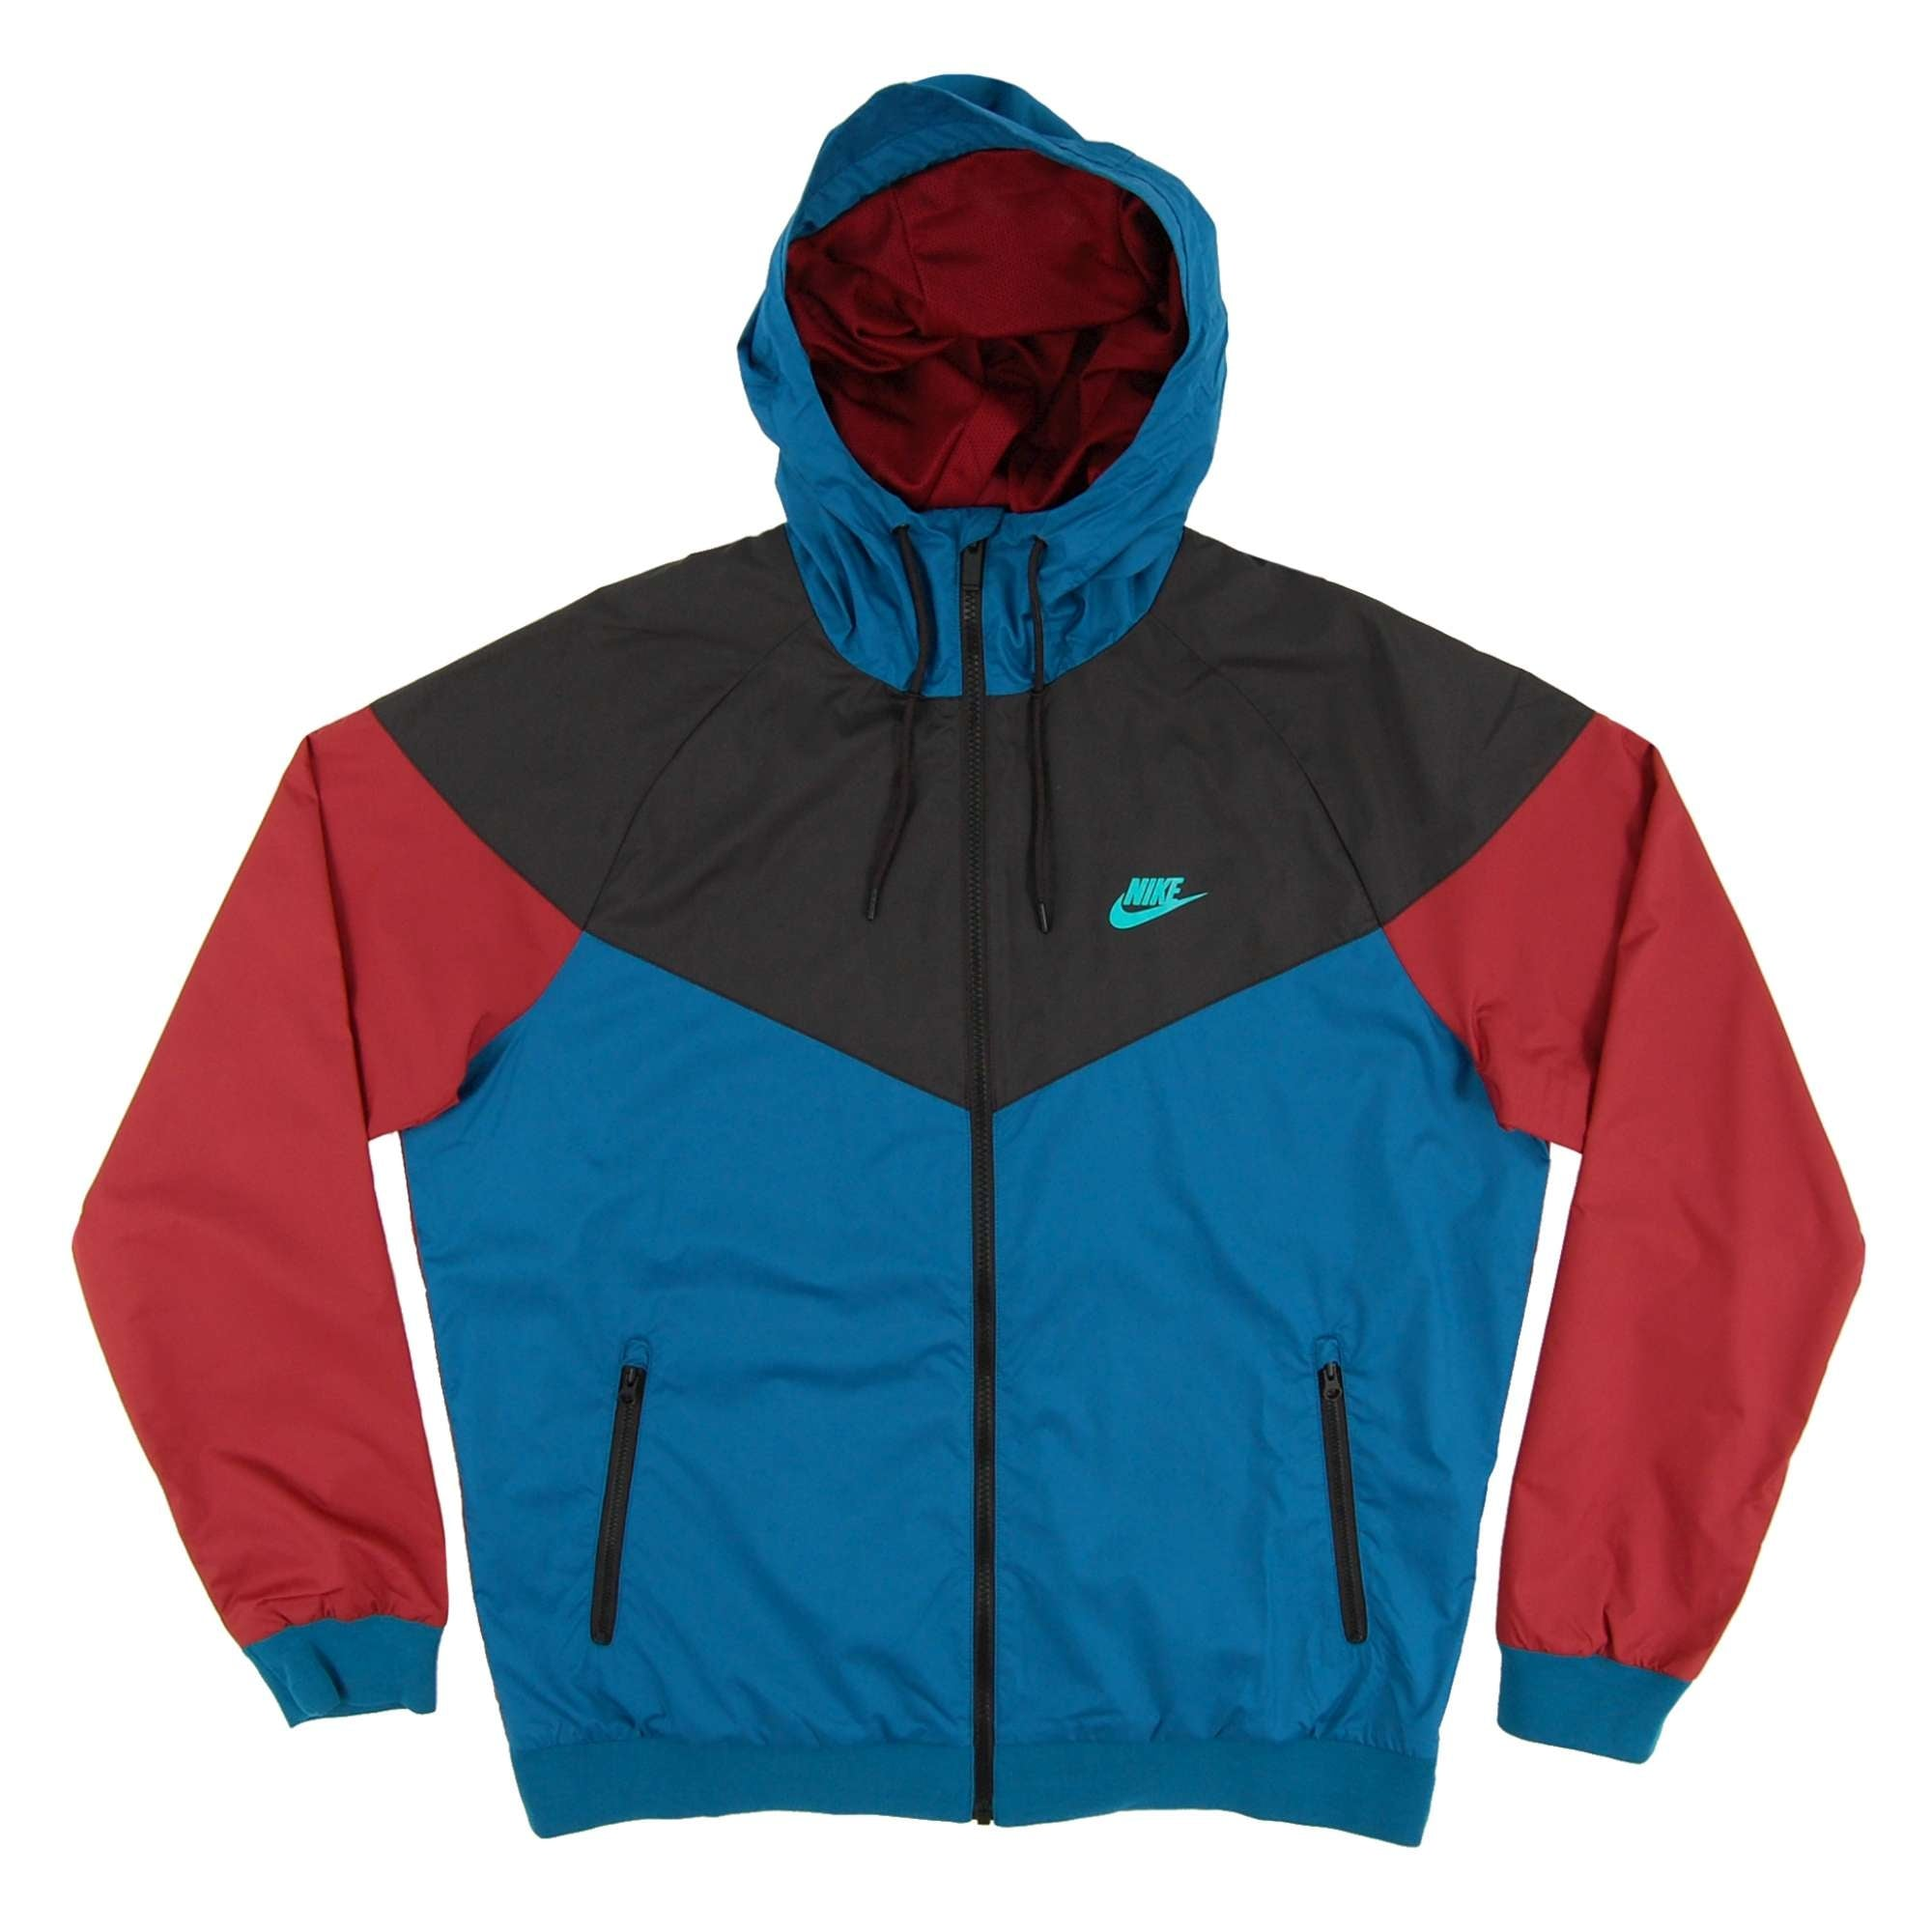 escocés Lluvioso Acuerdo  Windrunner Jacket Green Abyss Black Team Red Hyper Jade - Mens Clothing  from Attic Clothing UK